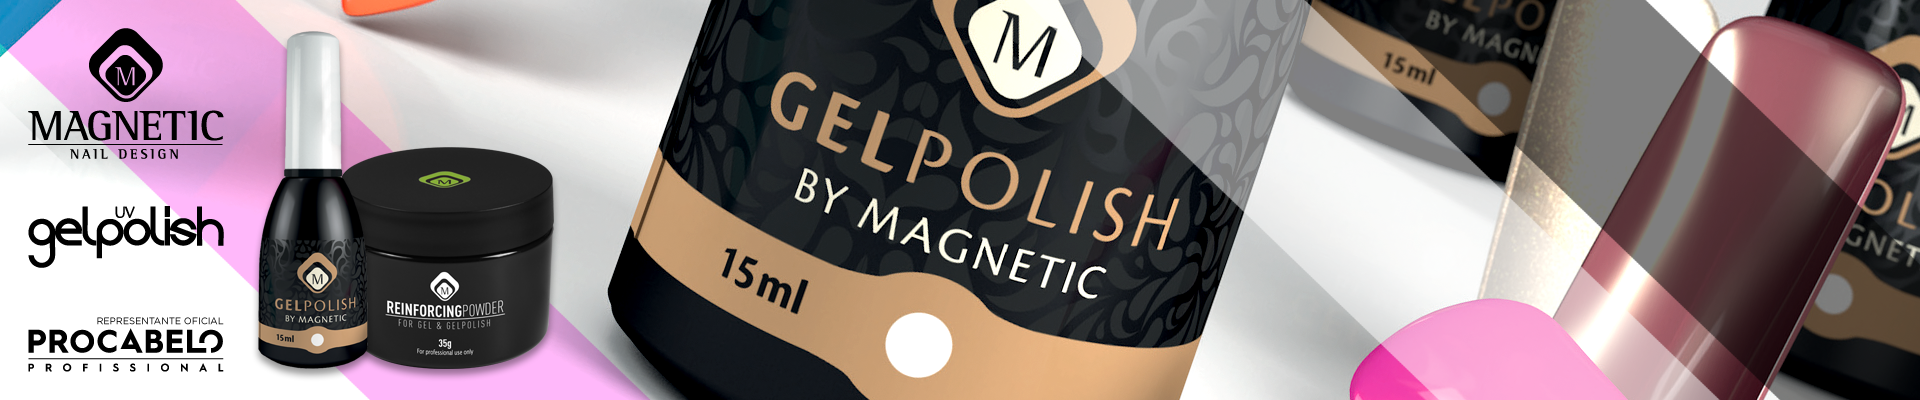 GELPOLISH Magnetic